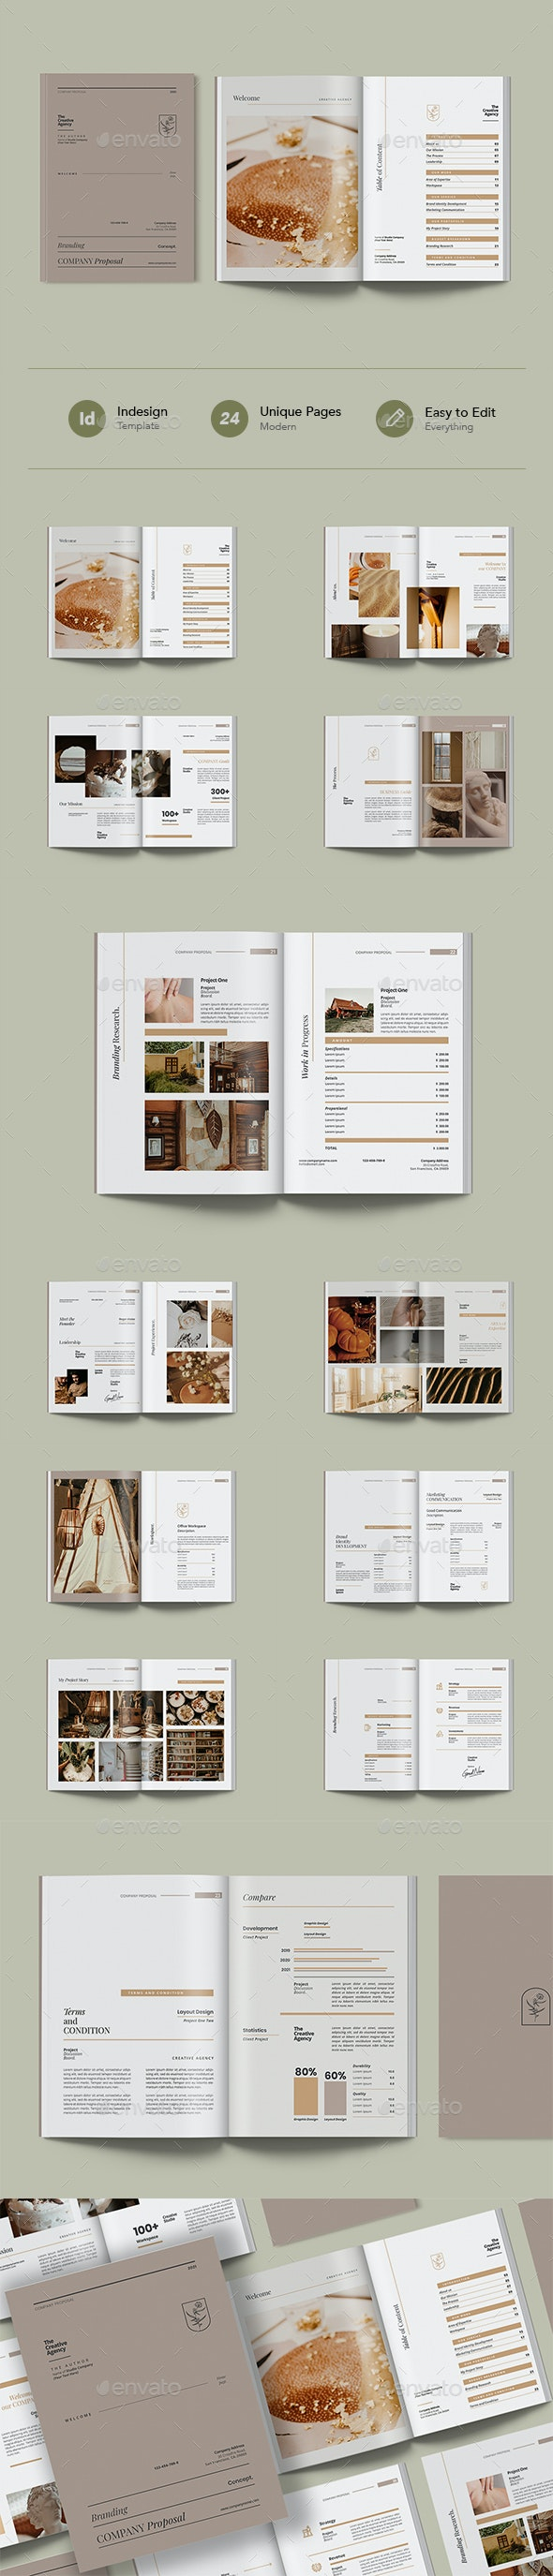 Simple and Elegant Company Proposal Template - Proposals & Invoices Stationery